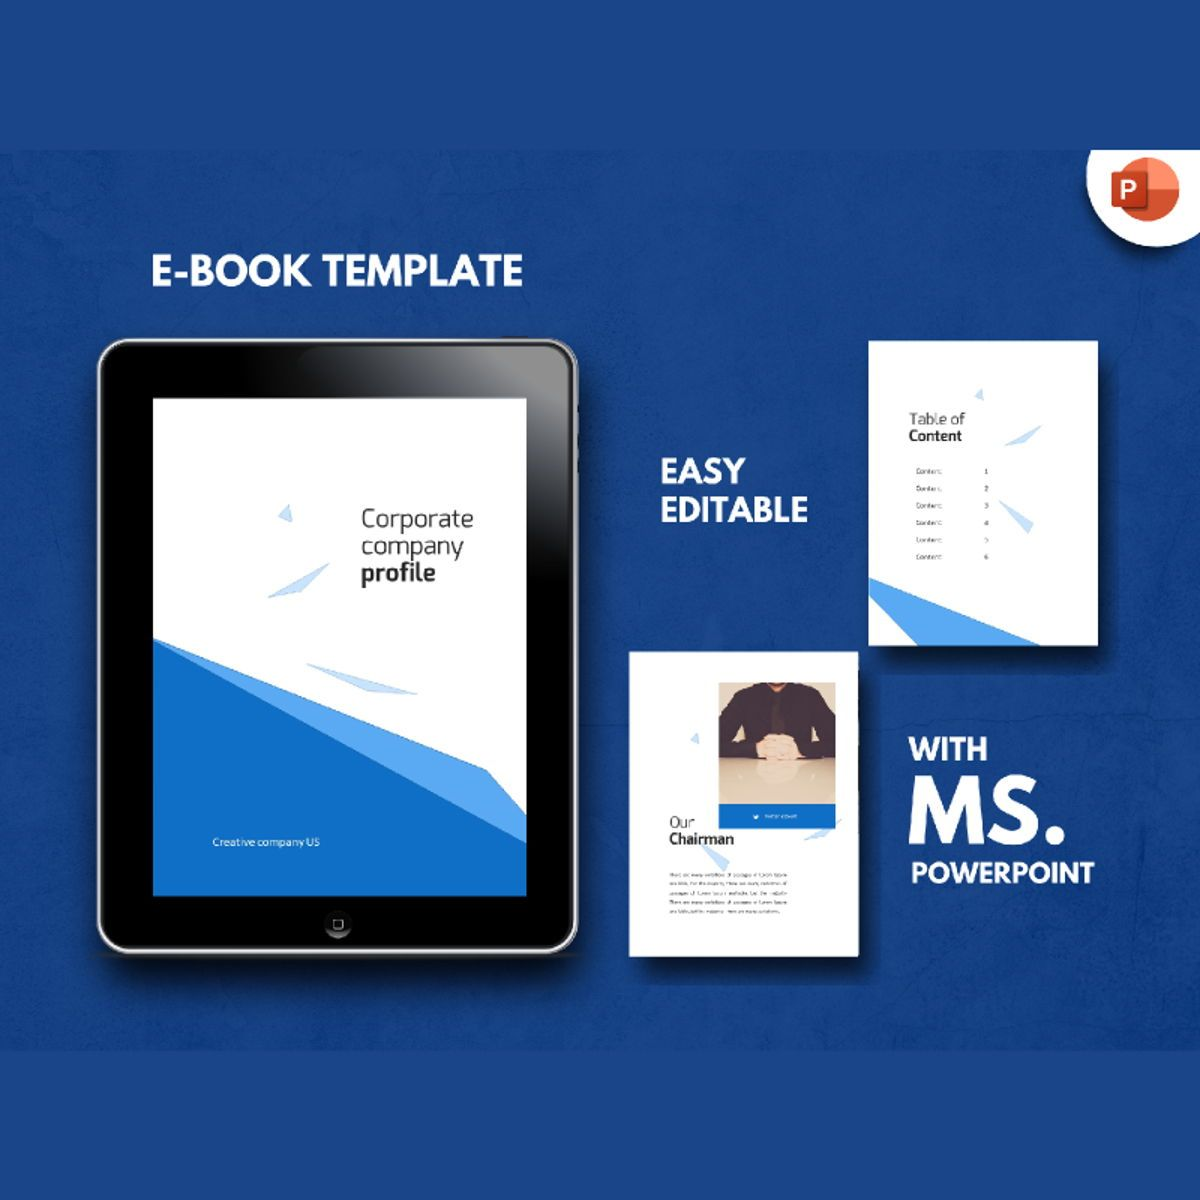 Corporate Company Profile eBook PowerPoint Presentation Template, 04493, Business Models — PoweredTemplate.com